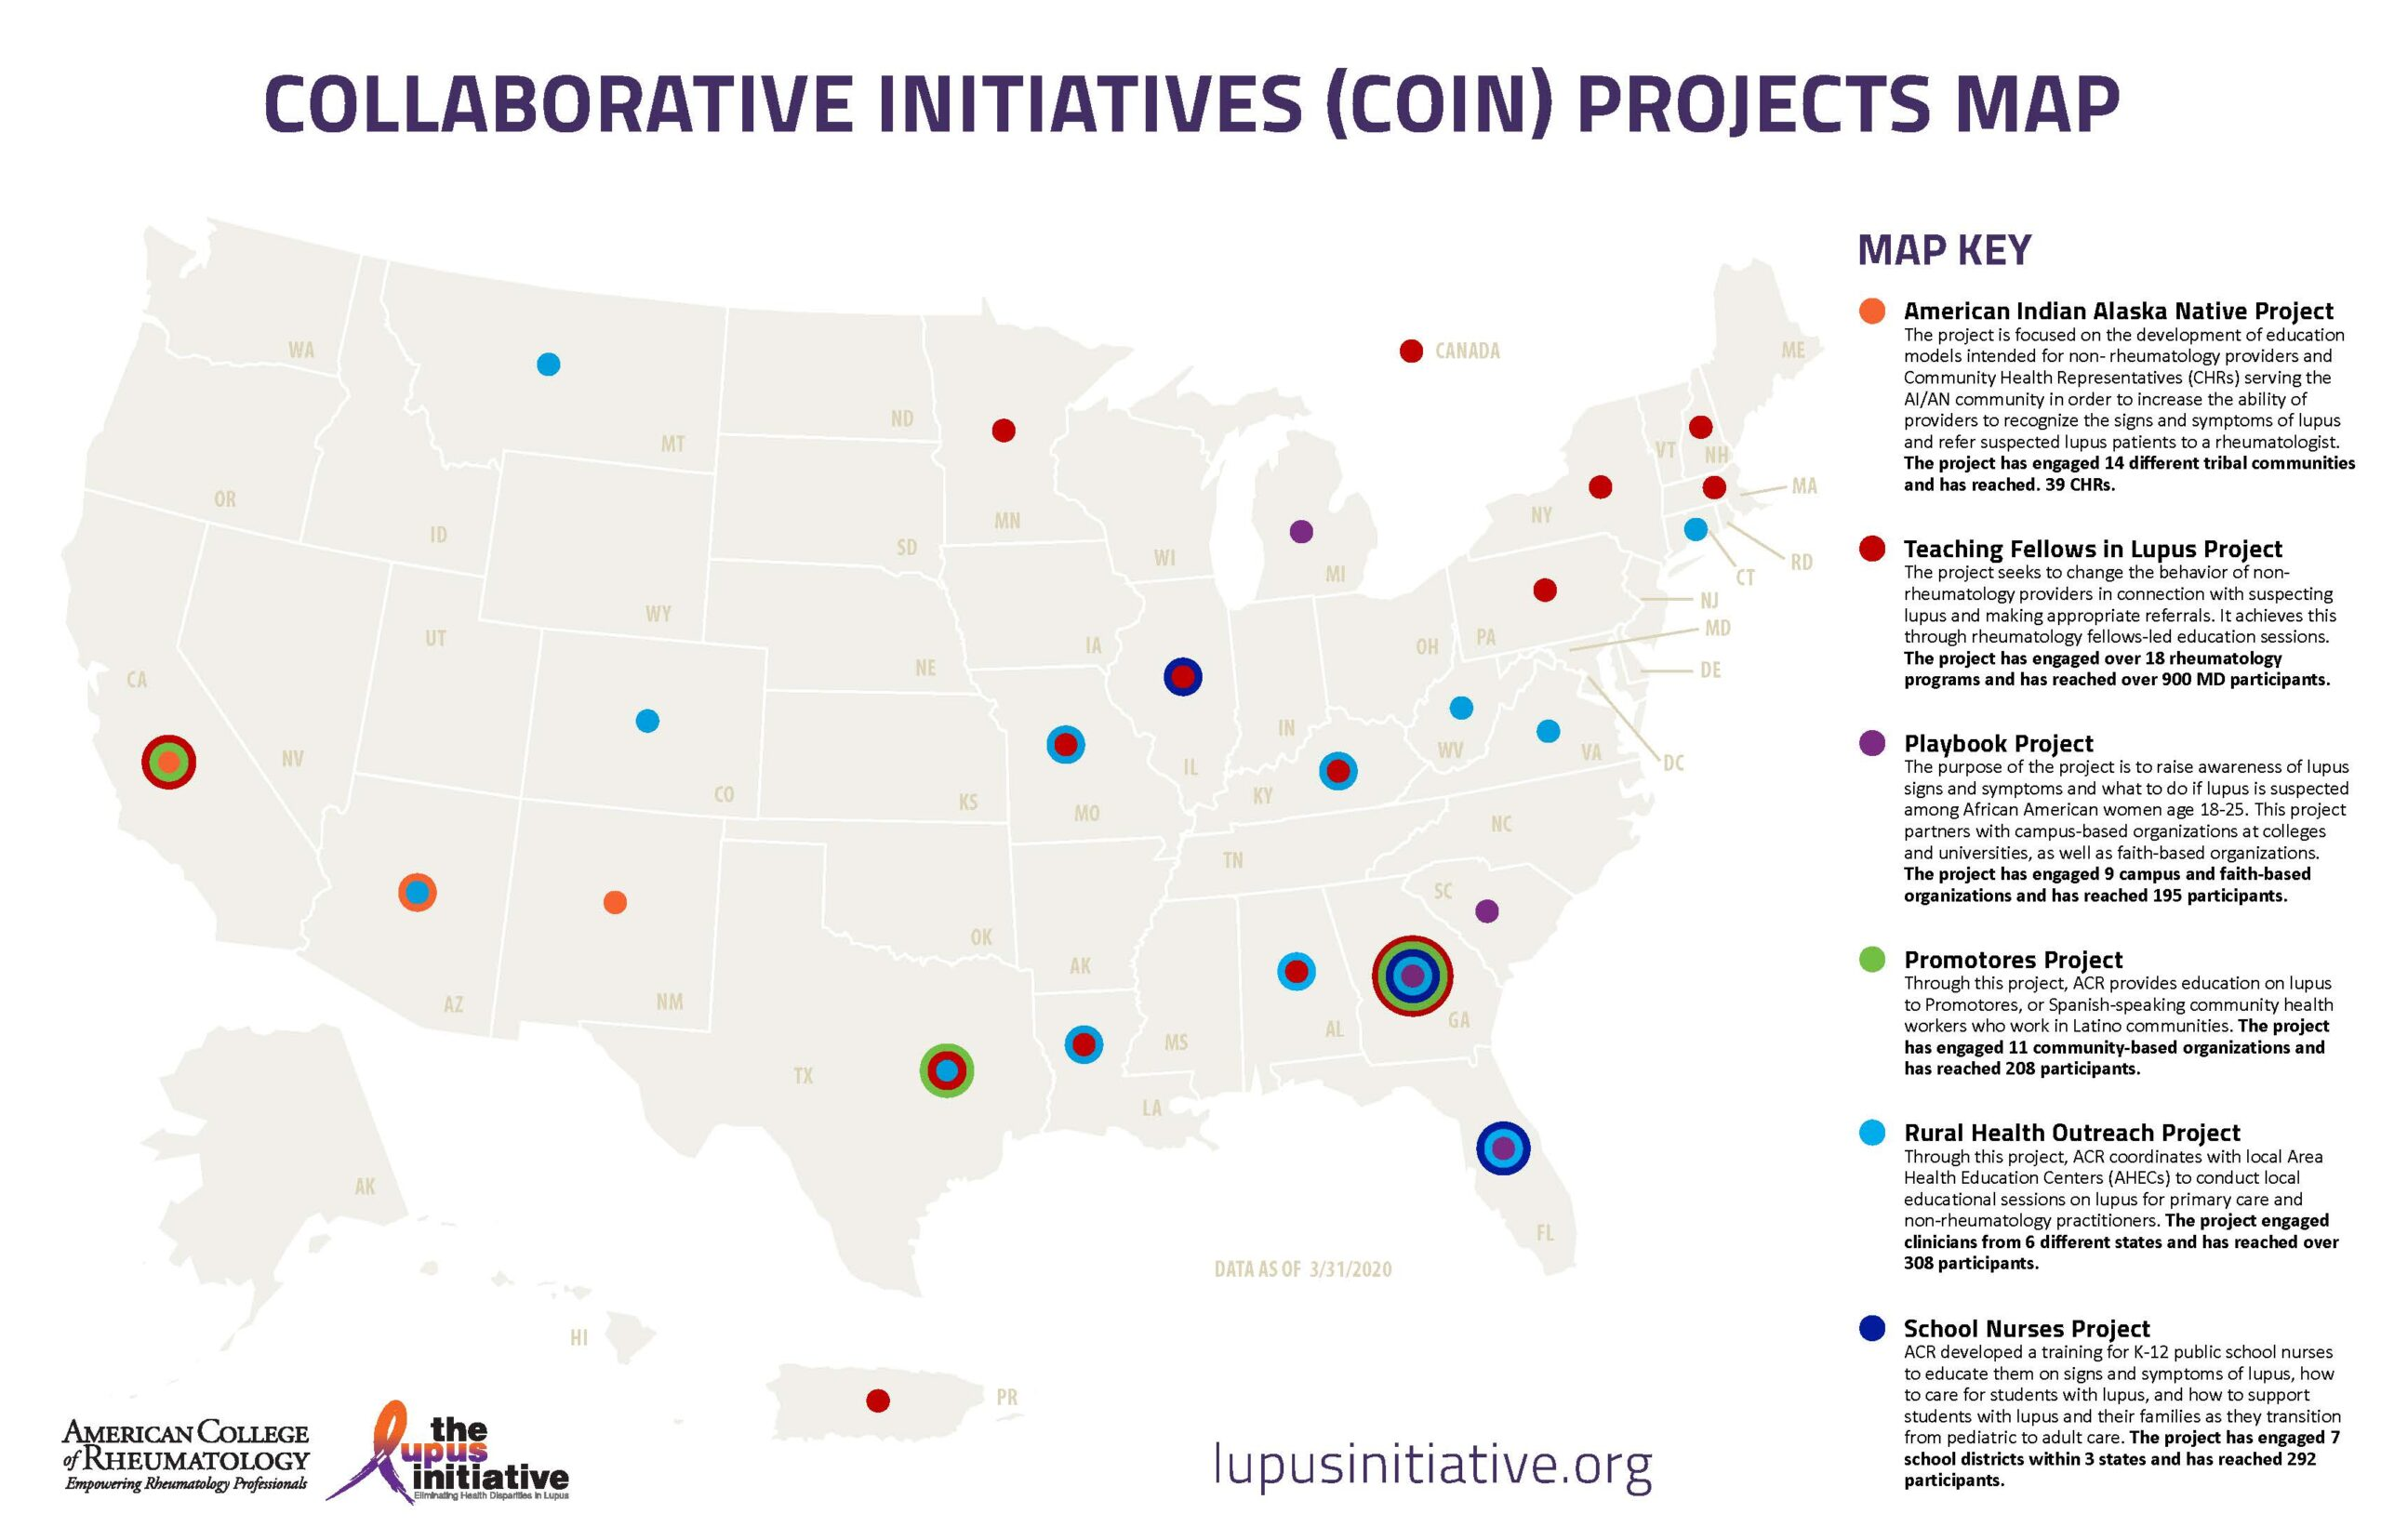 ACR COIN CDC Project Map Image